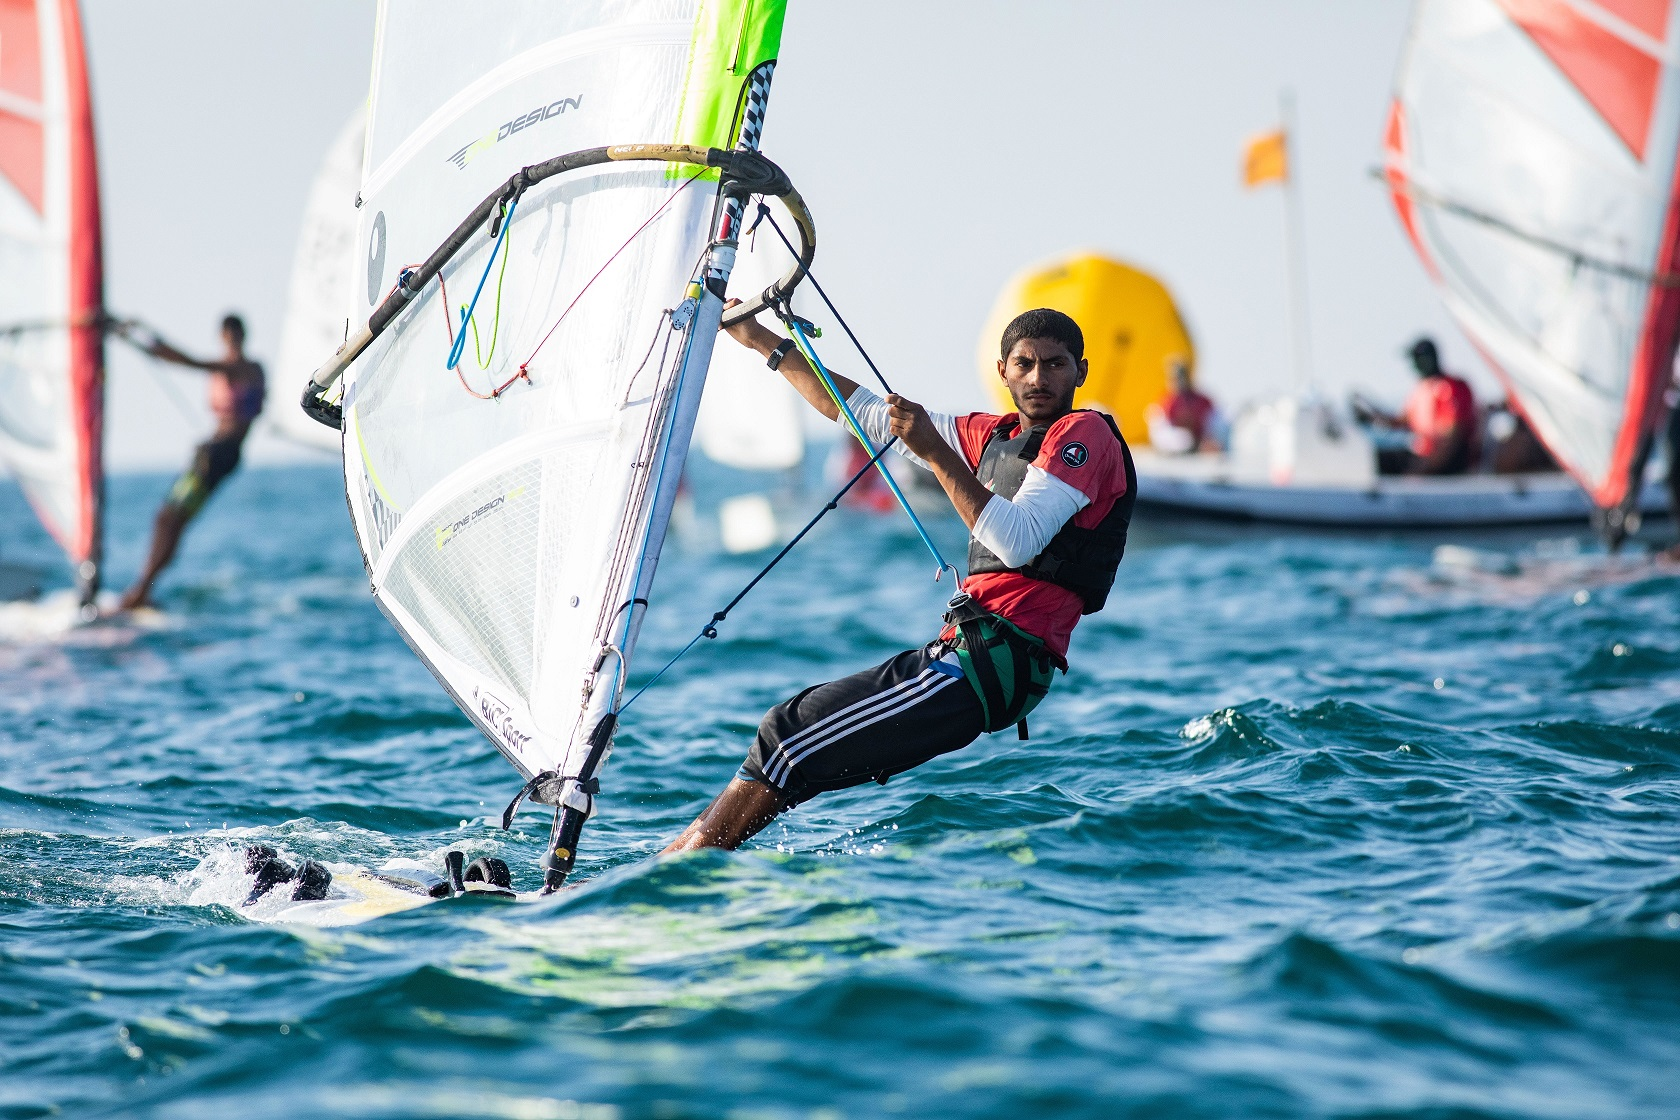 Young sailors seize opportunity to impress Oman Sail's national team selectors